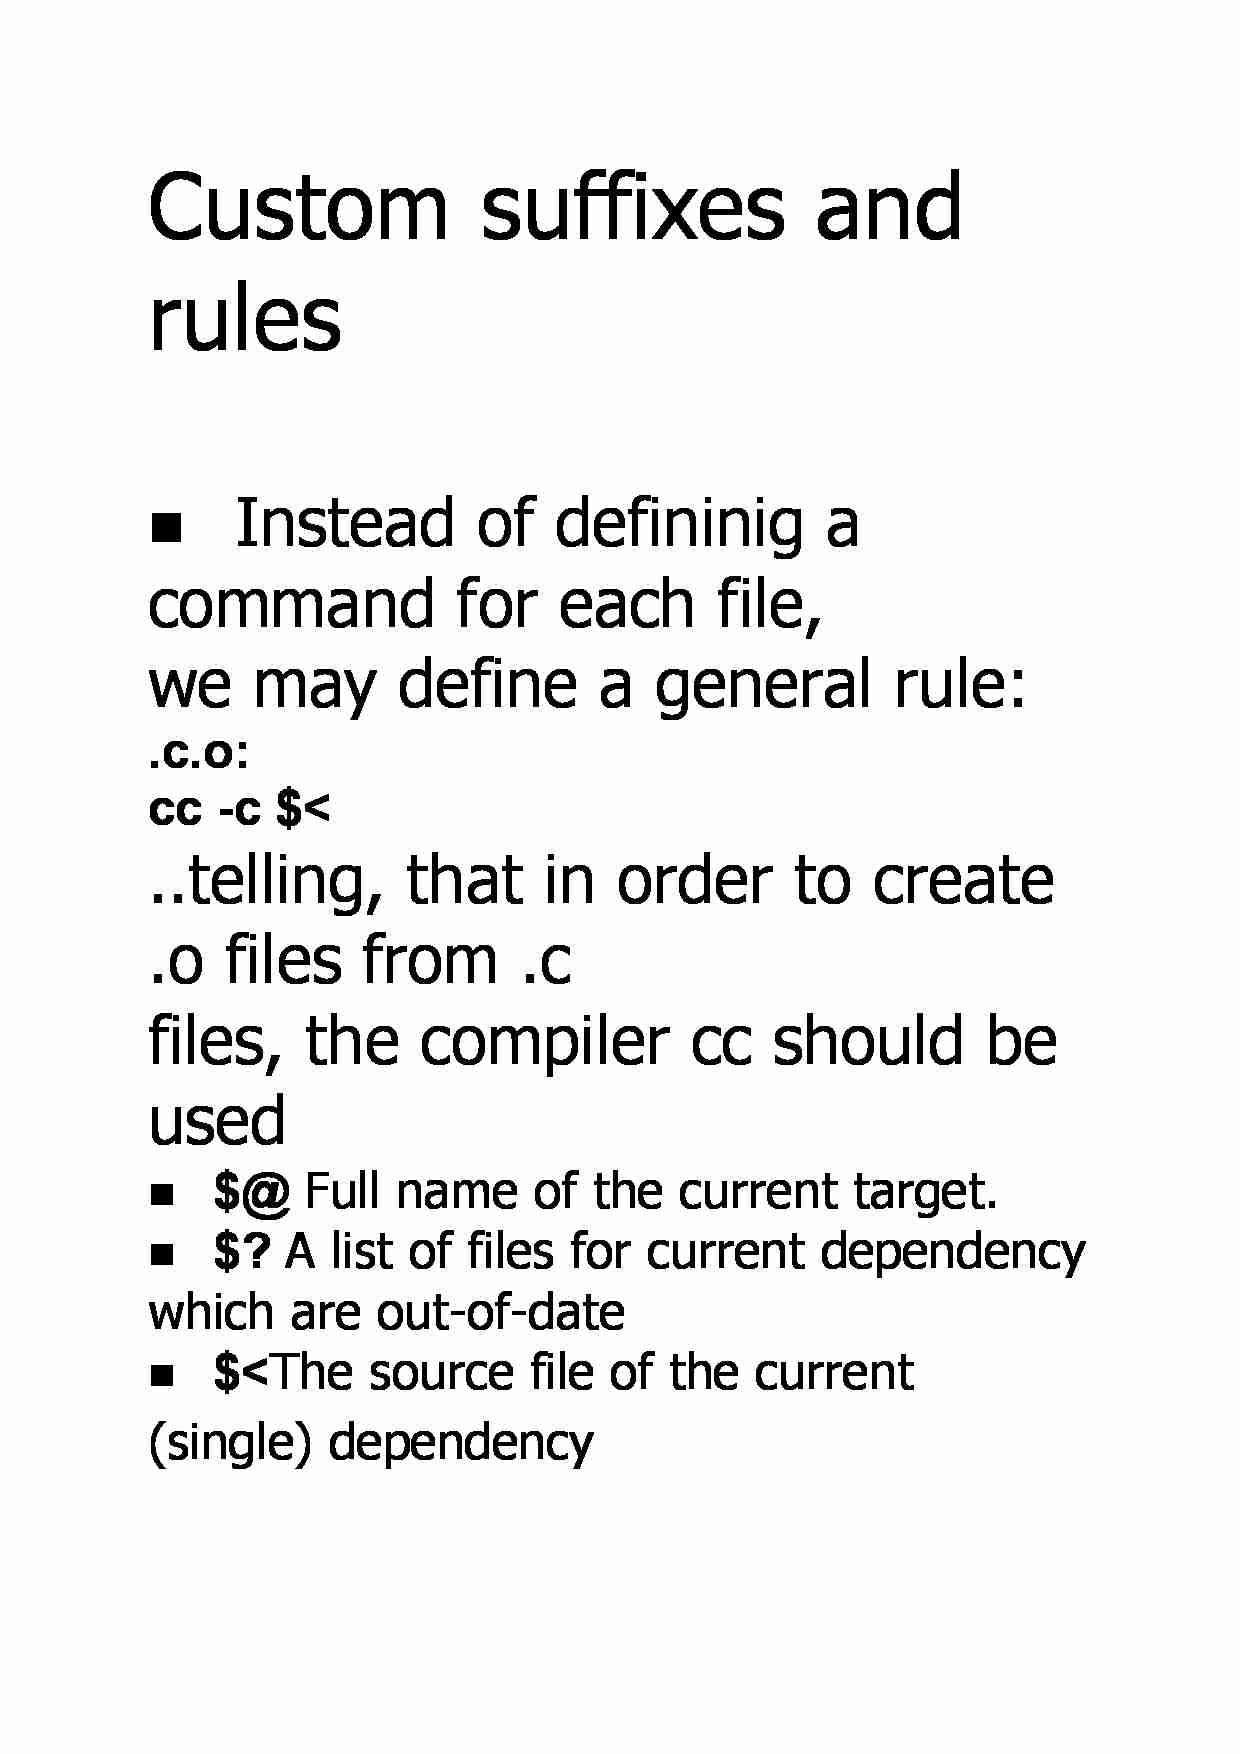 Custom suffixes and rules - strona 1